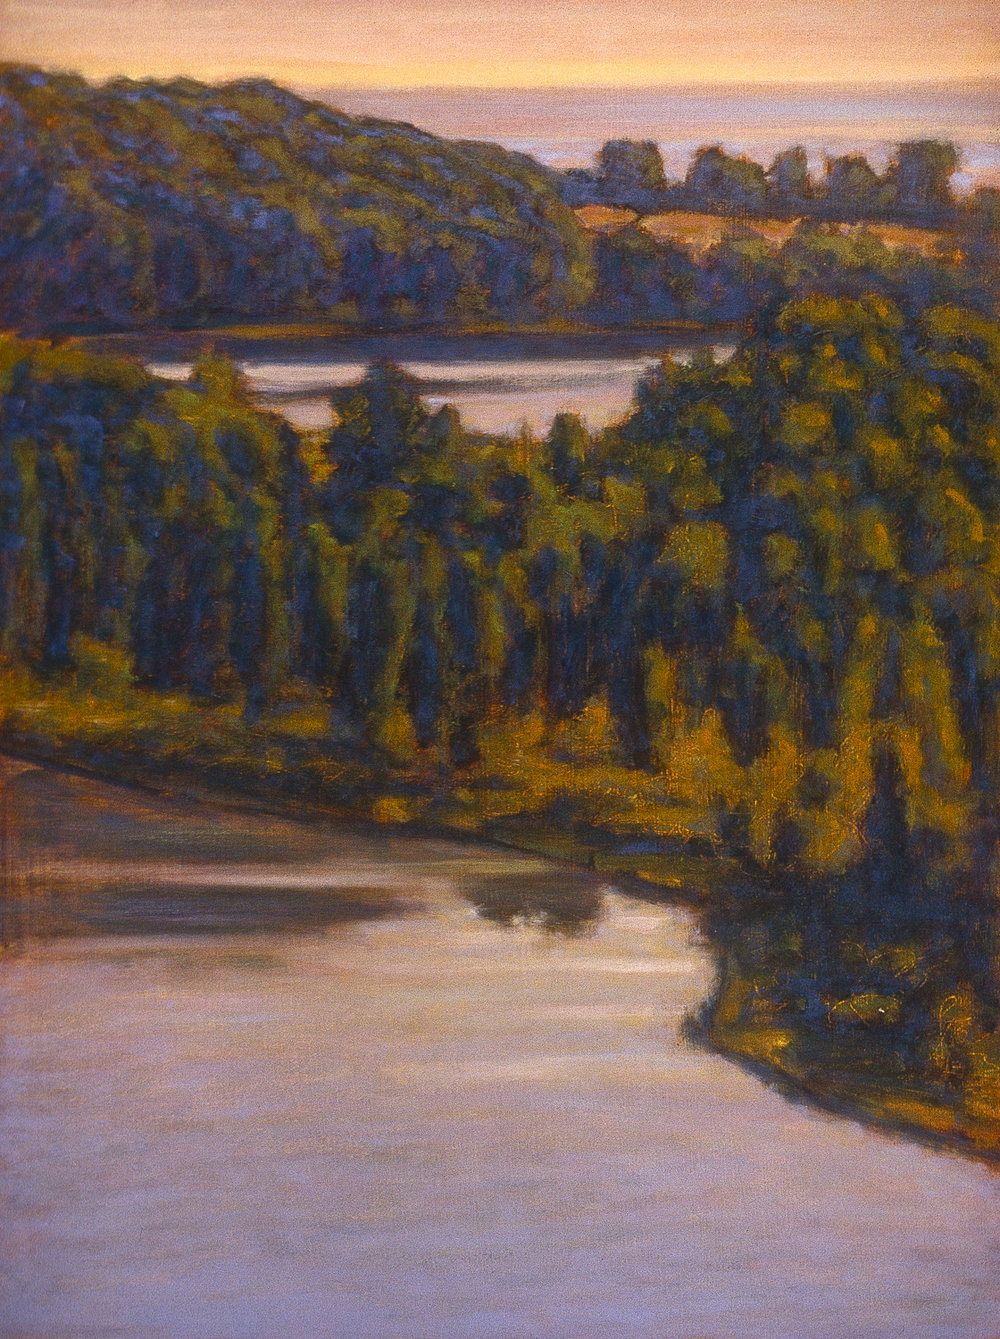 Ox Bow | oil on canvas | 24 x 18"